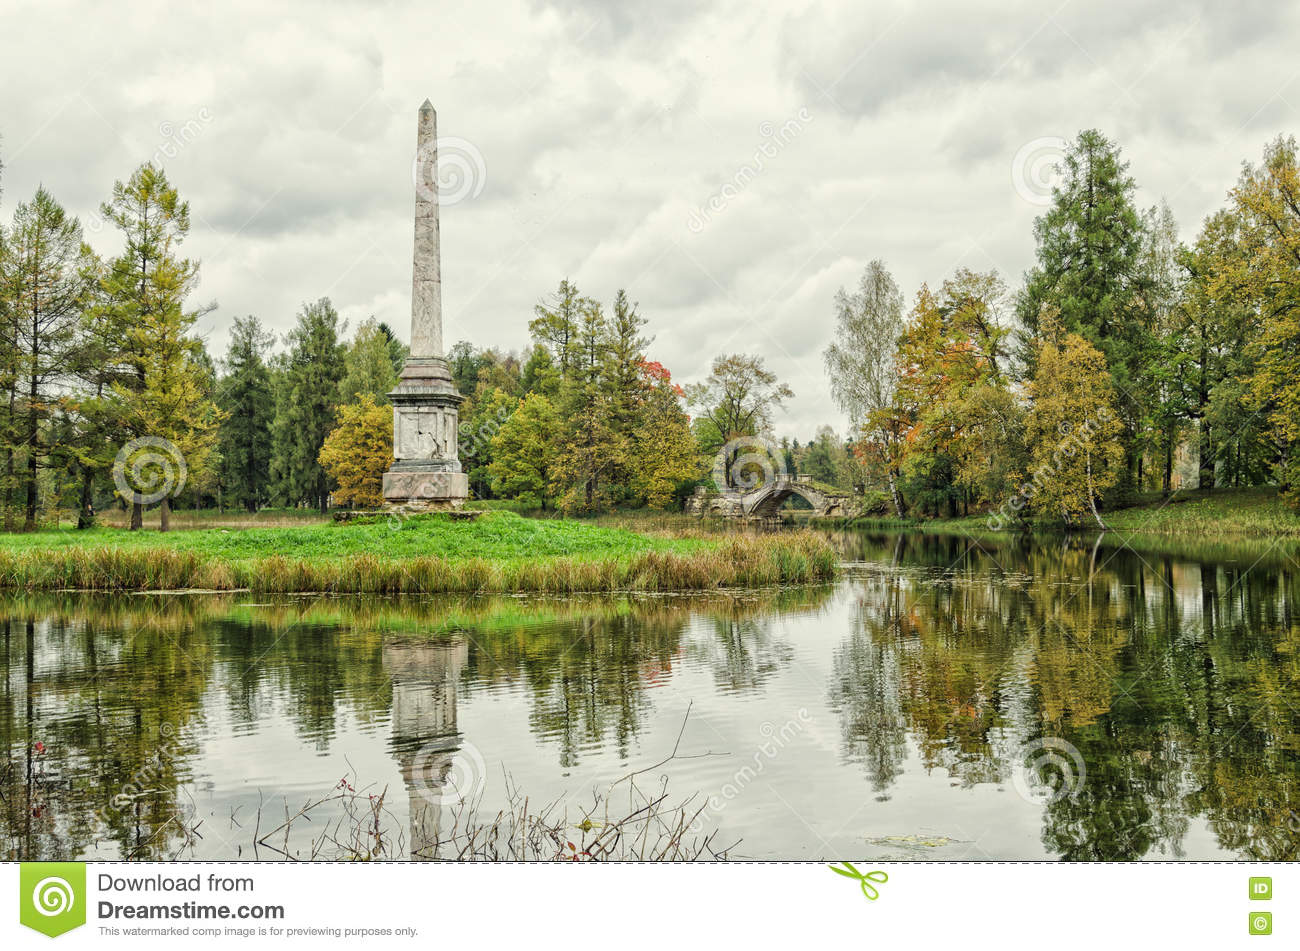 Chesmensky obelisk and the Gorbaty (Humpback) bridge in Gatchina.